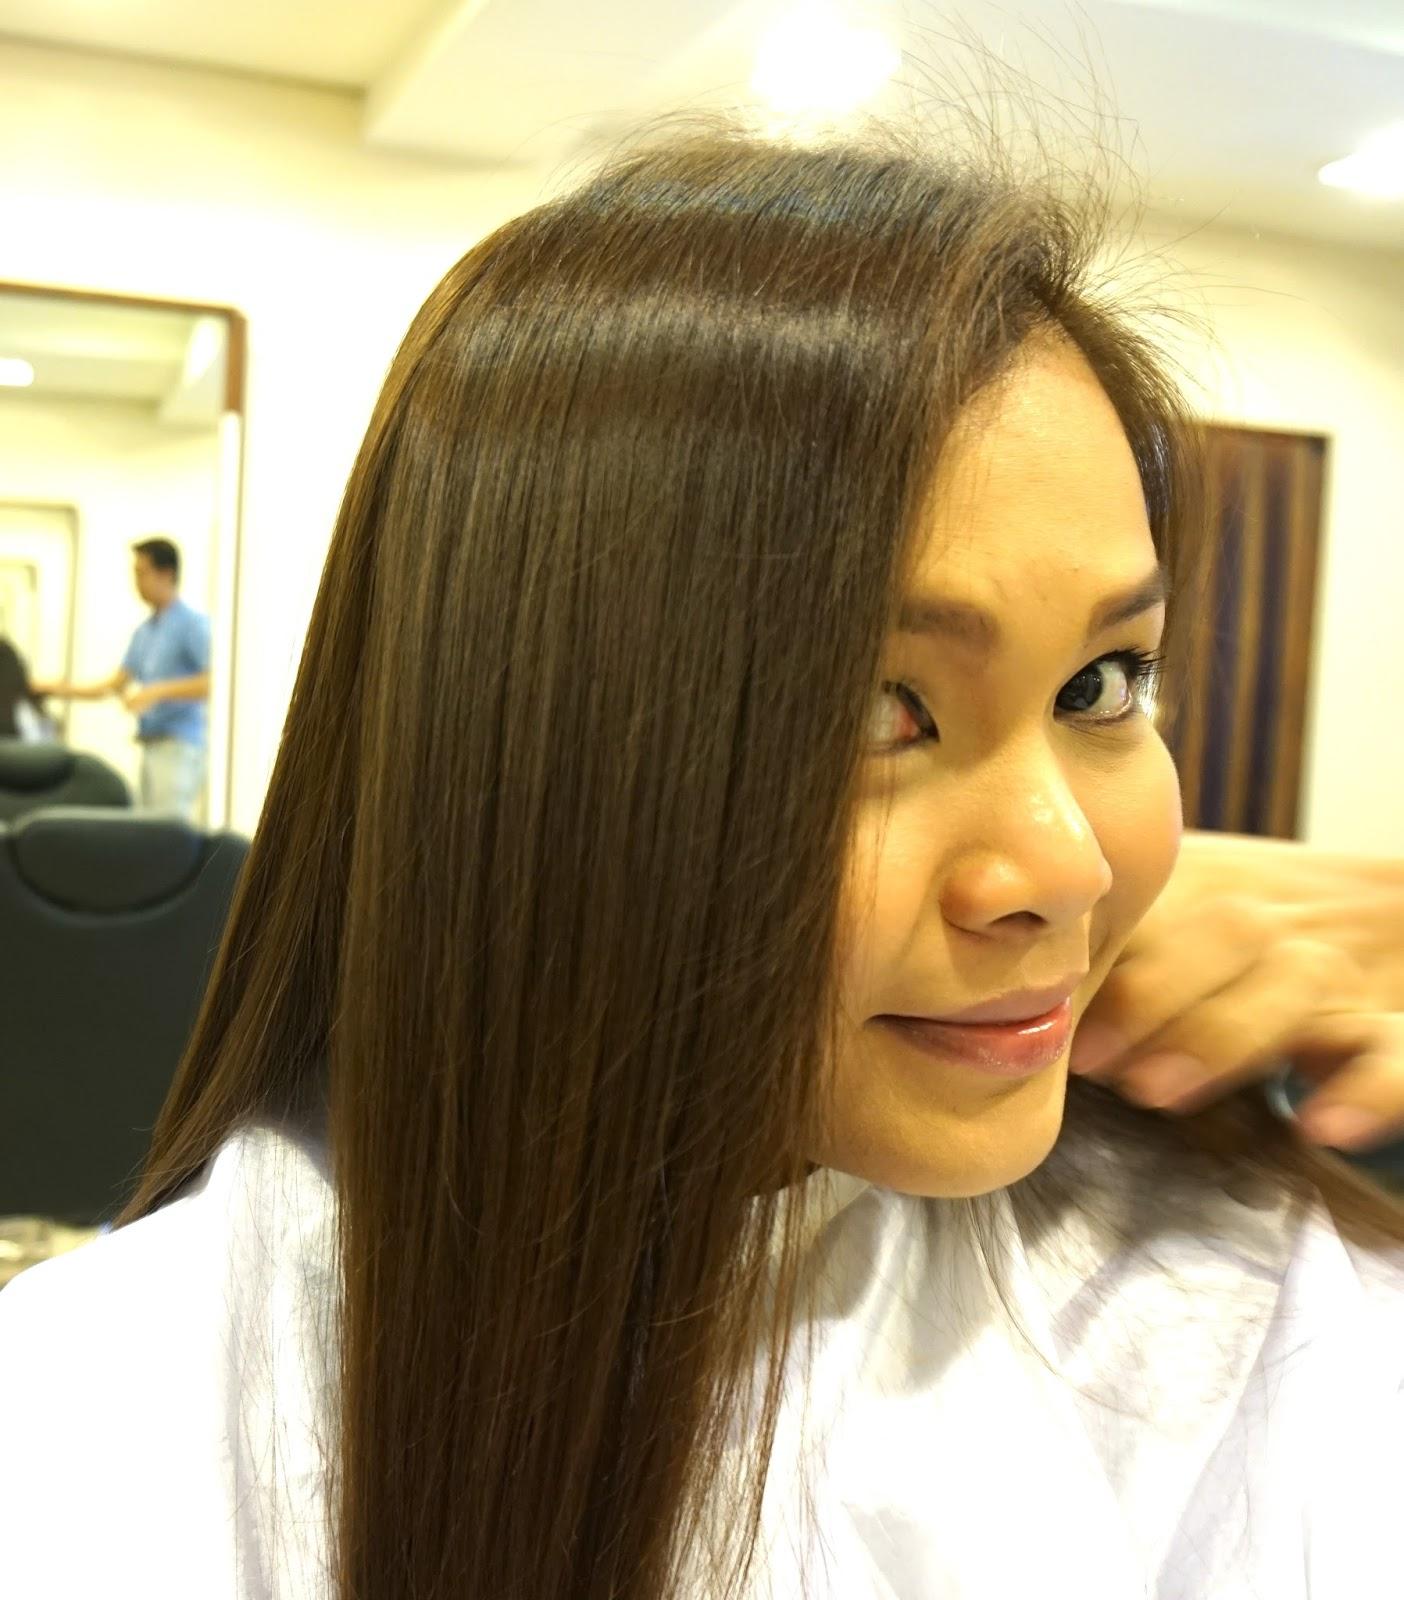 Hair Color at Cedar Salon: Review/Experience/Prices | The Beauty Junkee